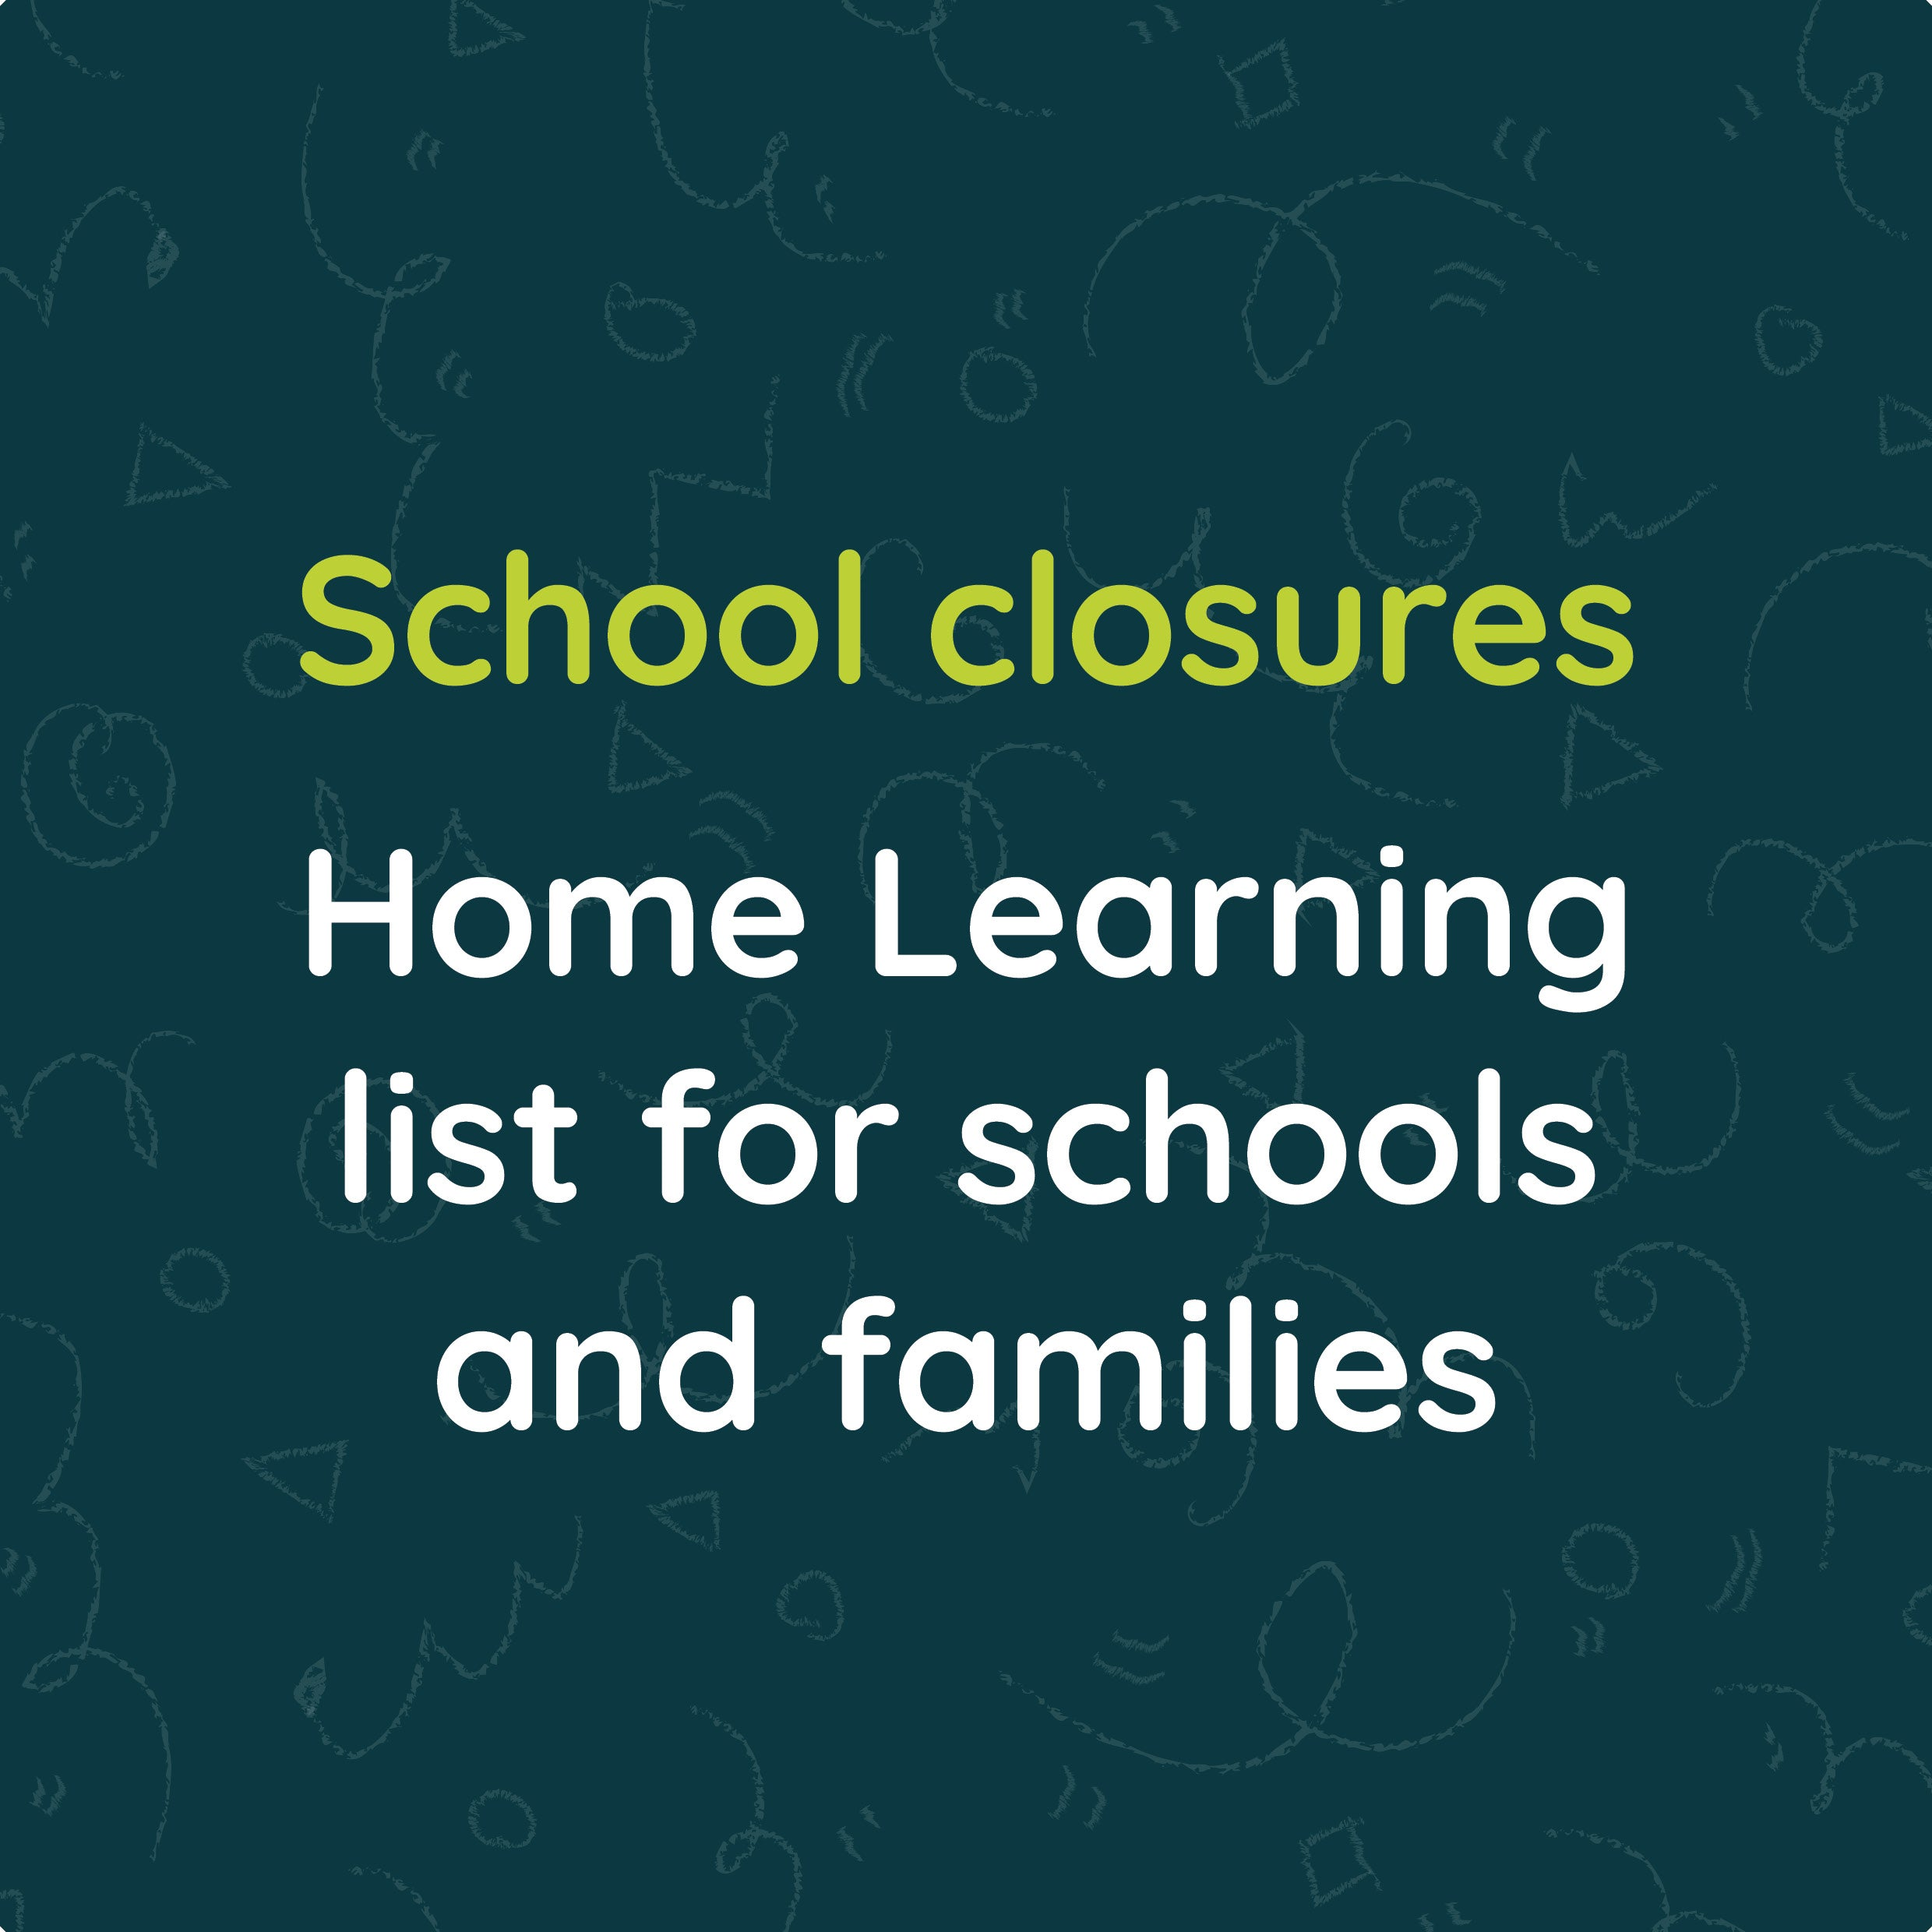 Home Learning Resources List for Schools and Families – ChatterPack